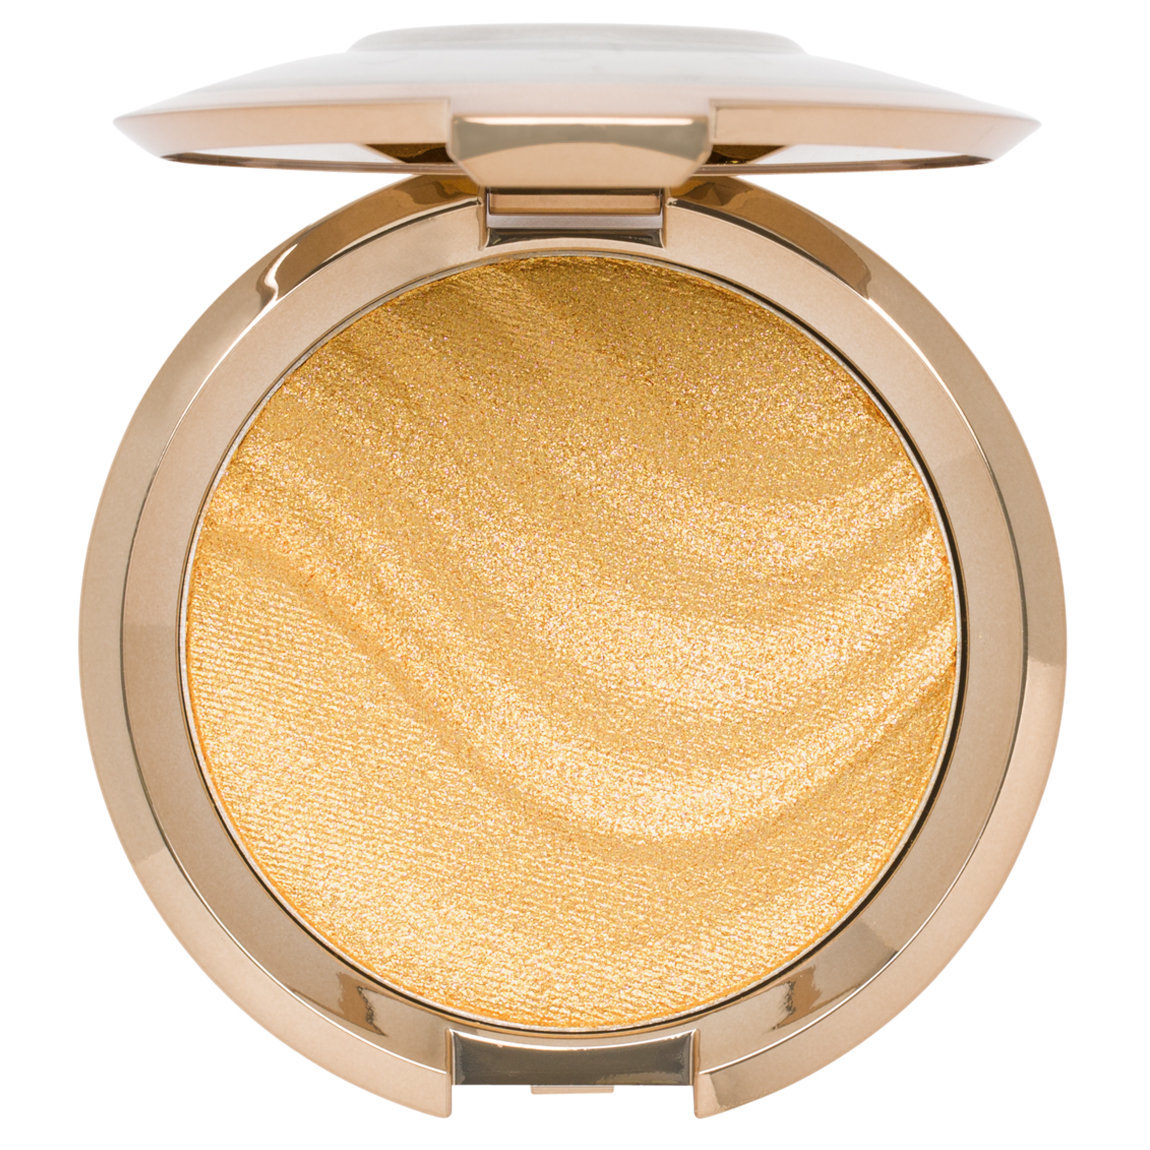 BECCA Cosmetics Shimmering Skin Perfector Pressed Highlighter Gold Lava alternative view 1 - product swatch.